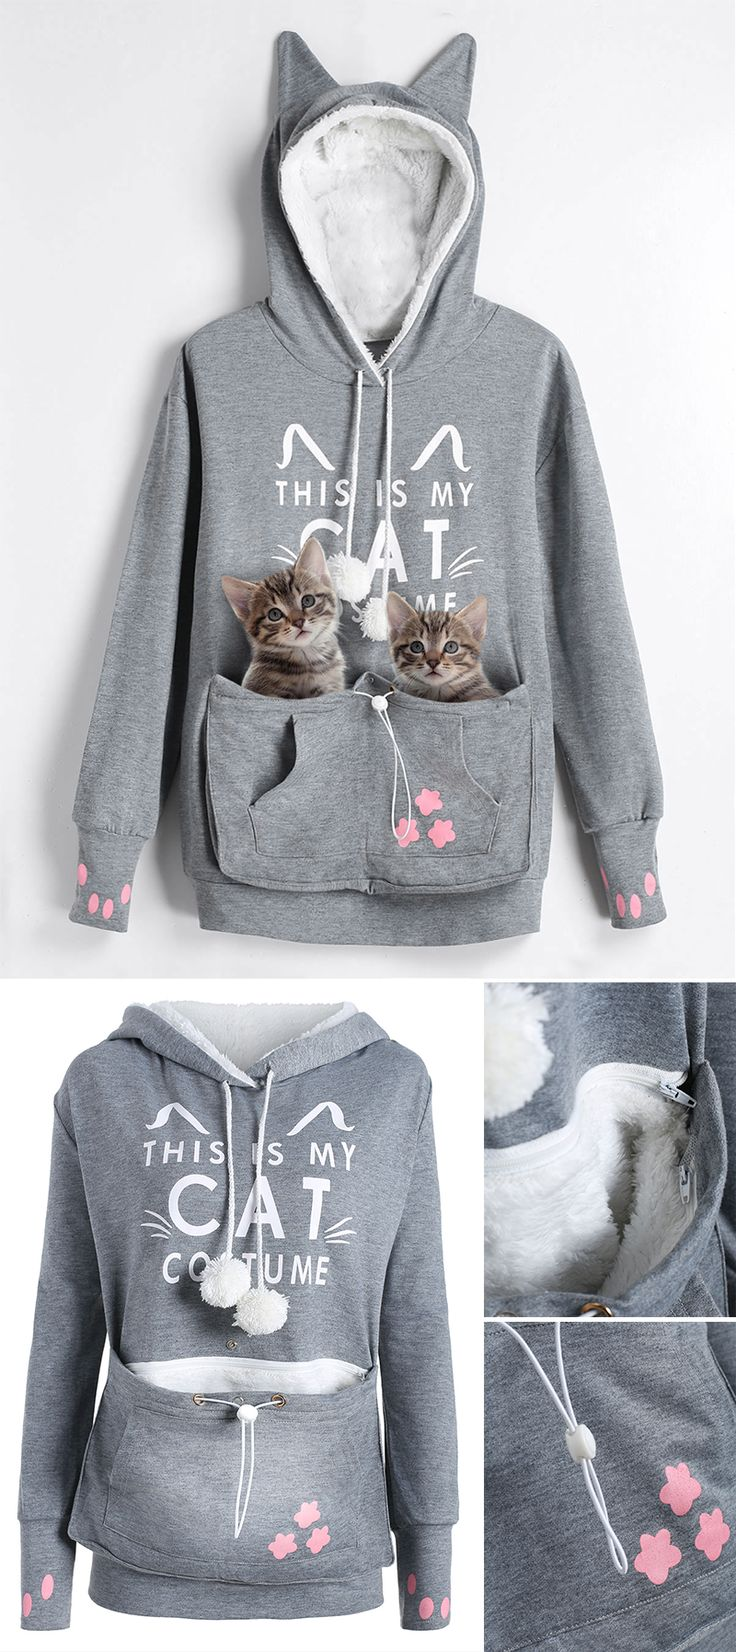 Plus Size Cat Holder Pouch Pocket Hoodie | $15.26 | #catlovers #hoodie #Plussize